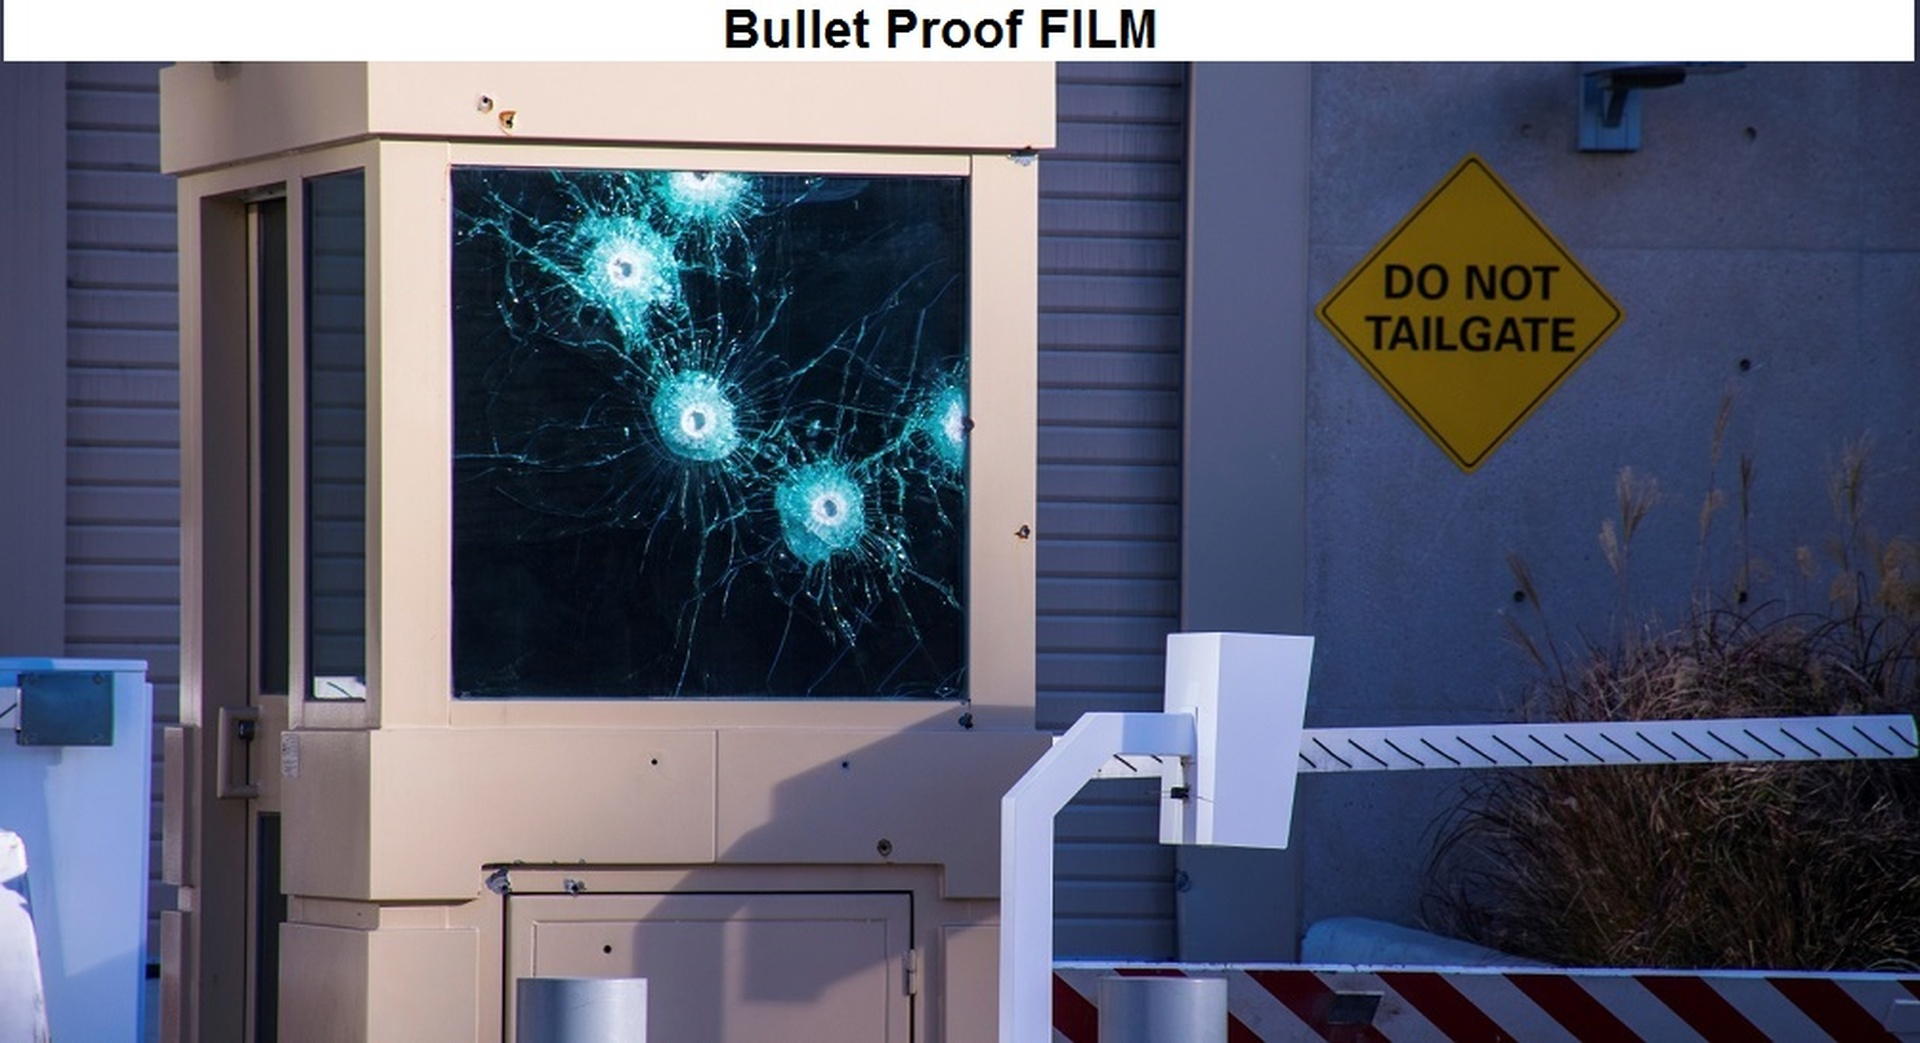 Bullet Proof Windows >> High Quality Bullet Proof Film For Windows Cars Glass